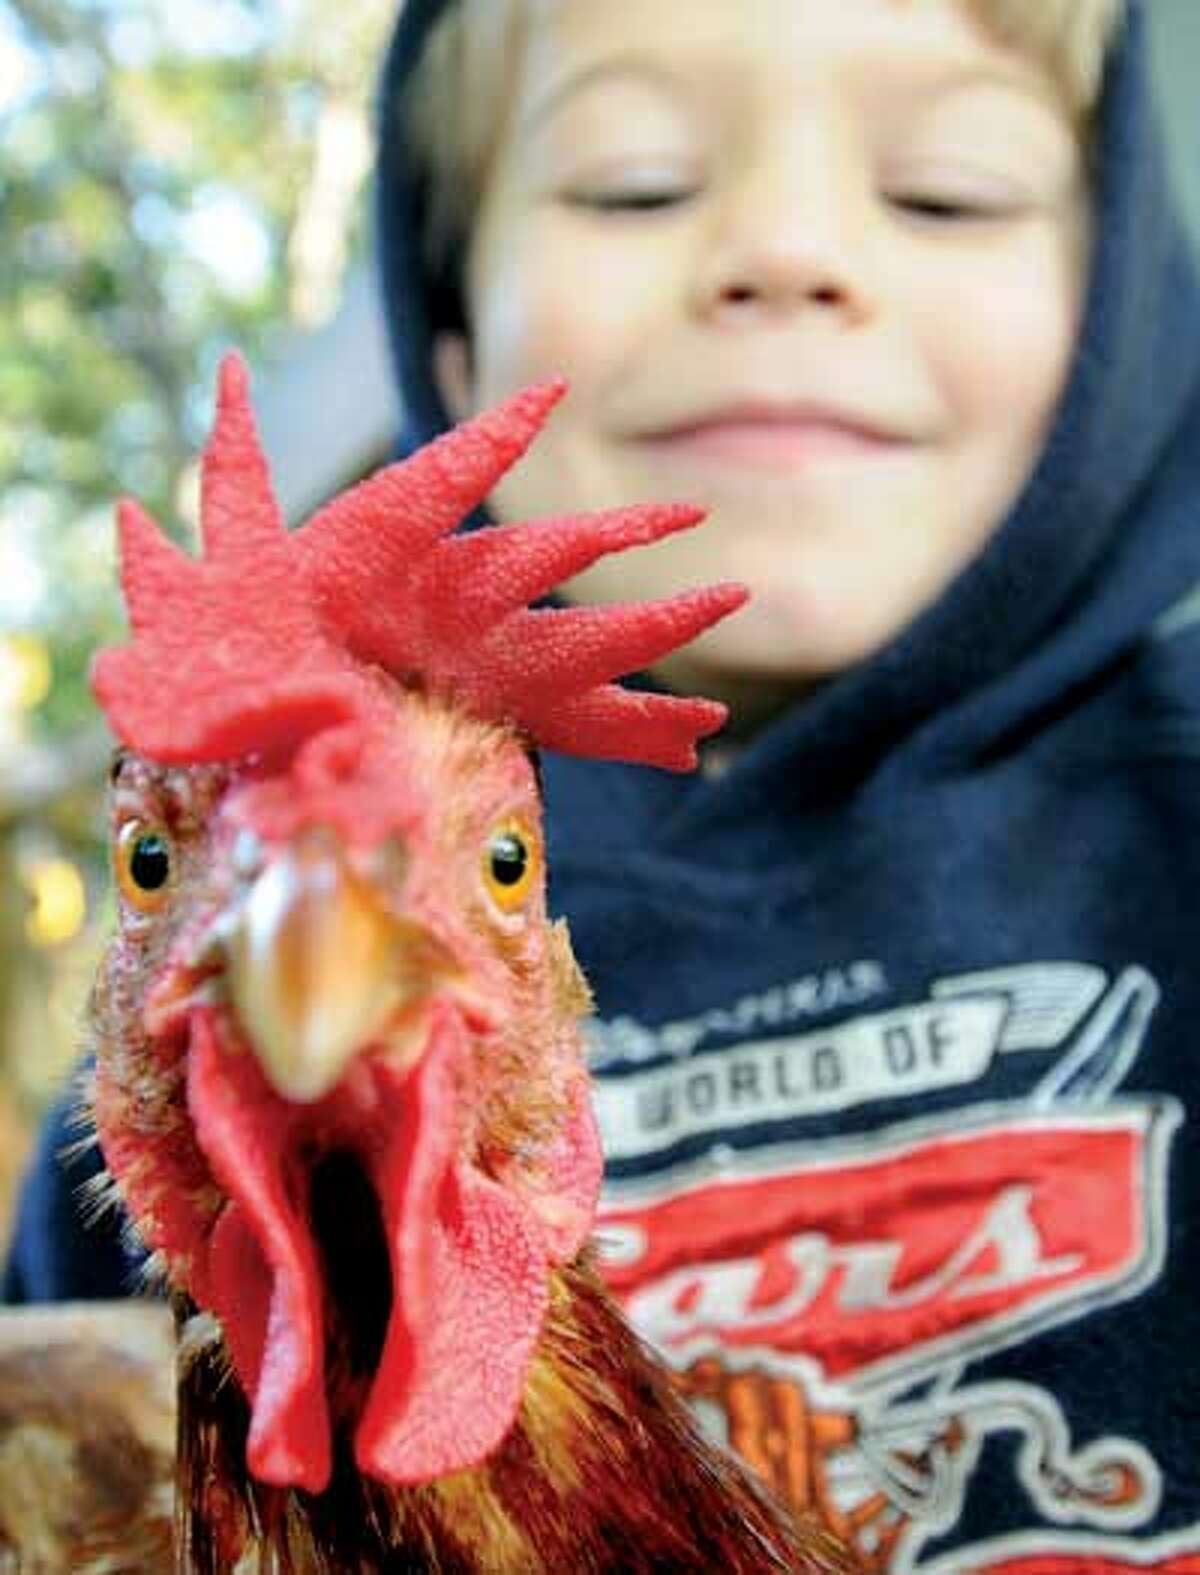 Aidan Nolde got to name all of the family hens: There's Queenie, Twisty, Lemon and Flappy Ding Dong. (Peter Hvizdak/Register)